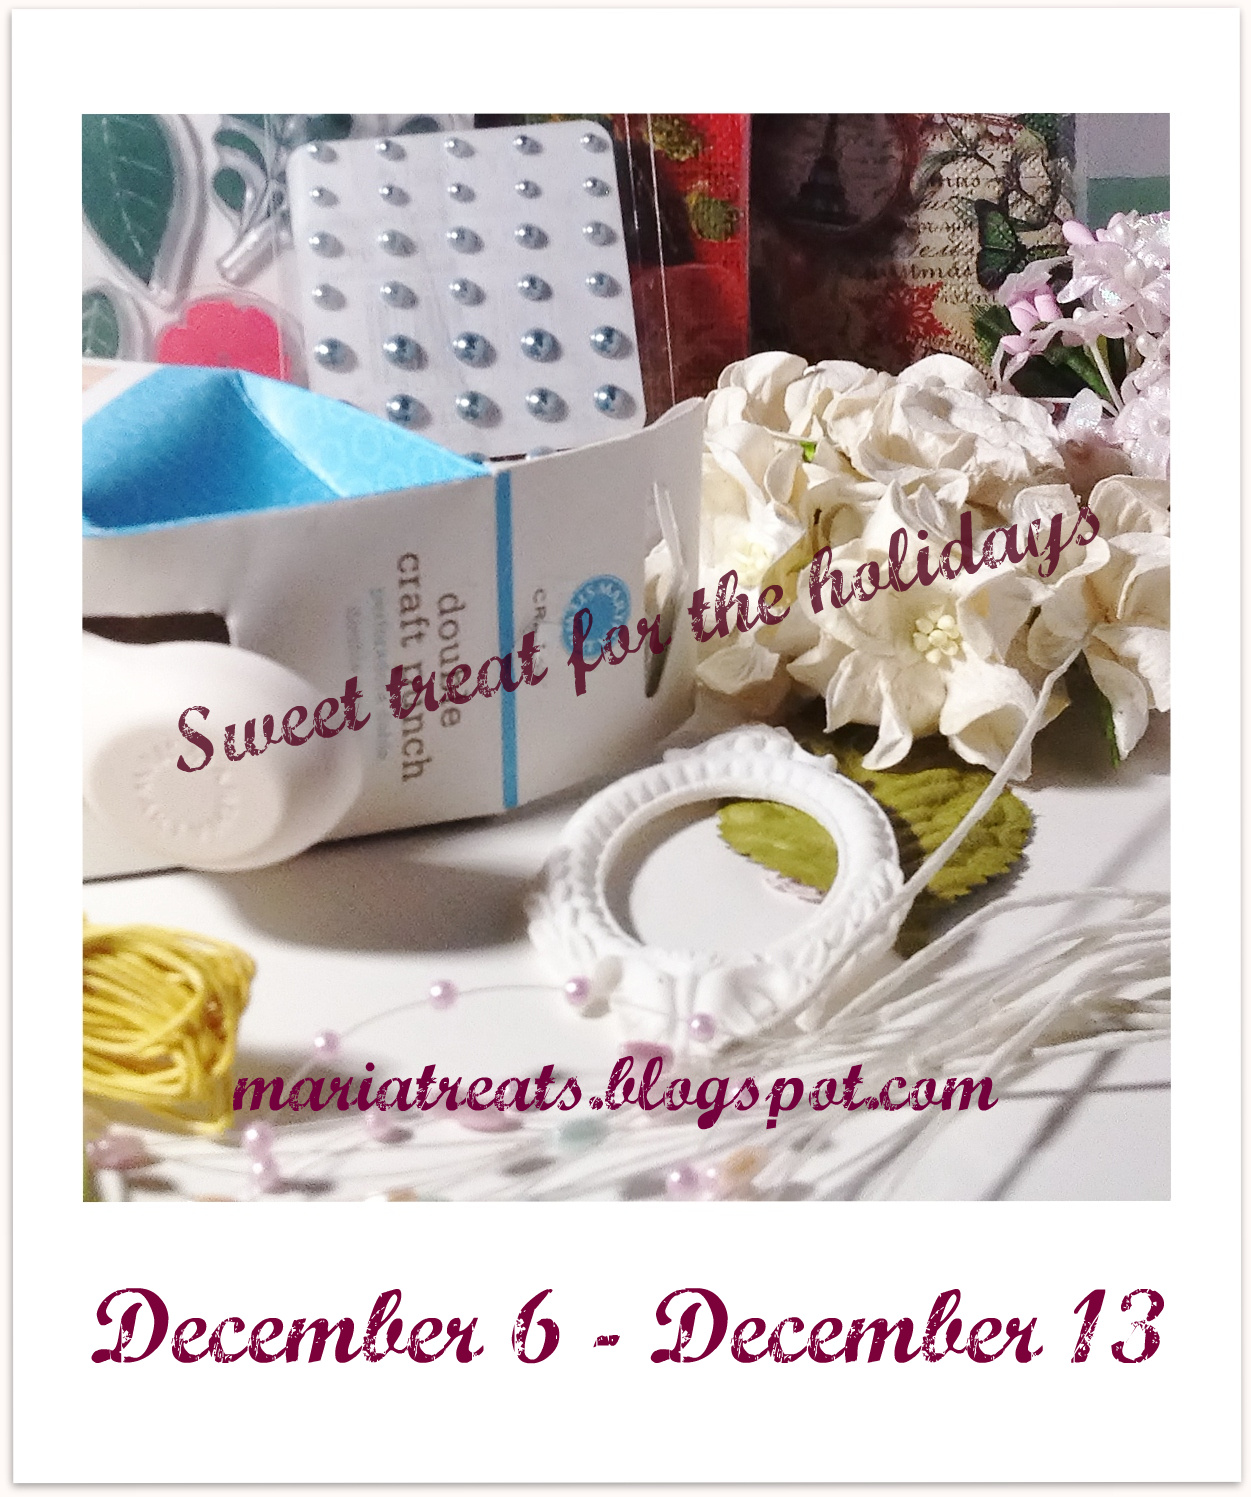 http://mariatreats.blogspot.com/2012/12/a-quick-treat-for-holidays.html